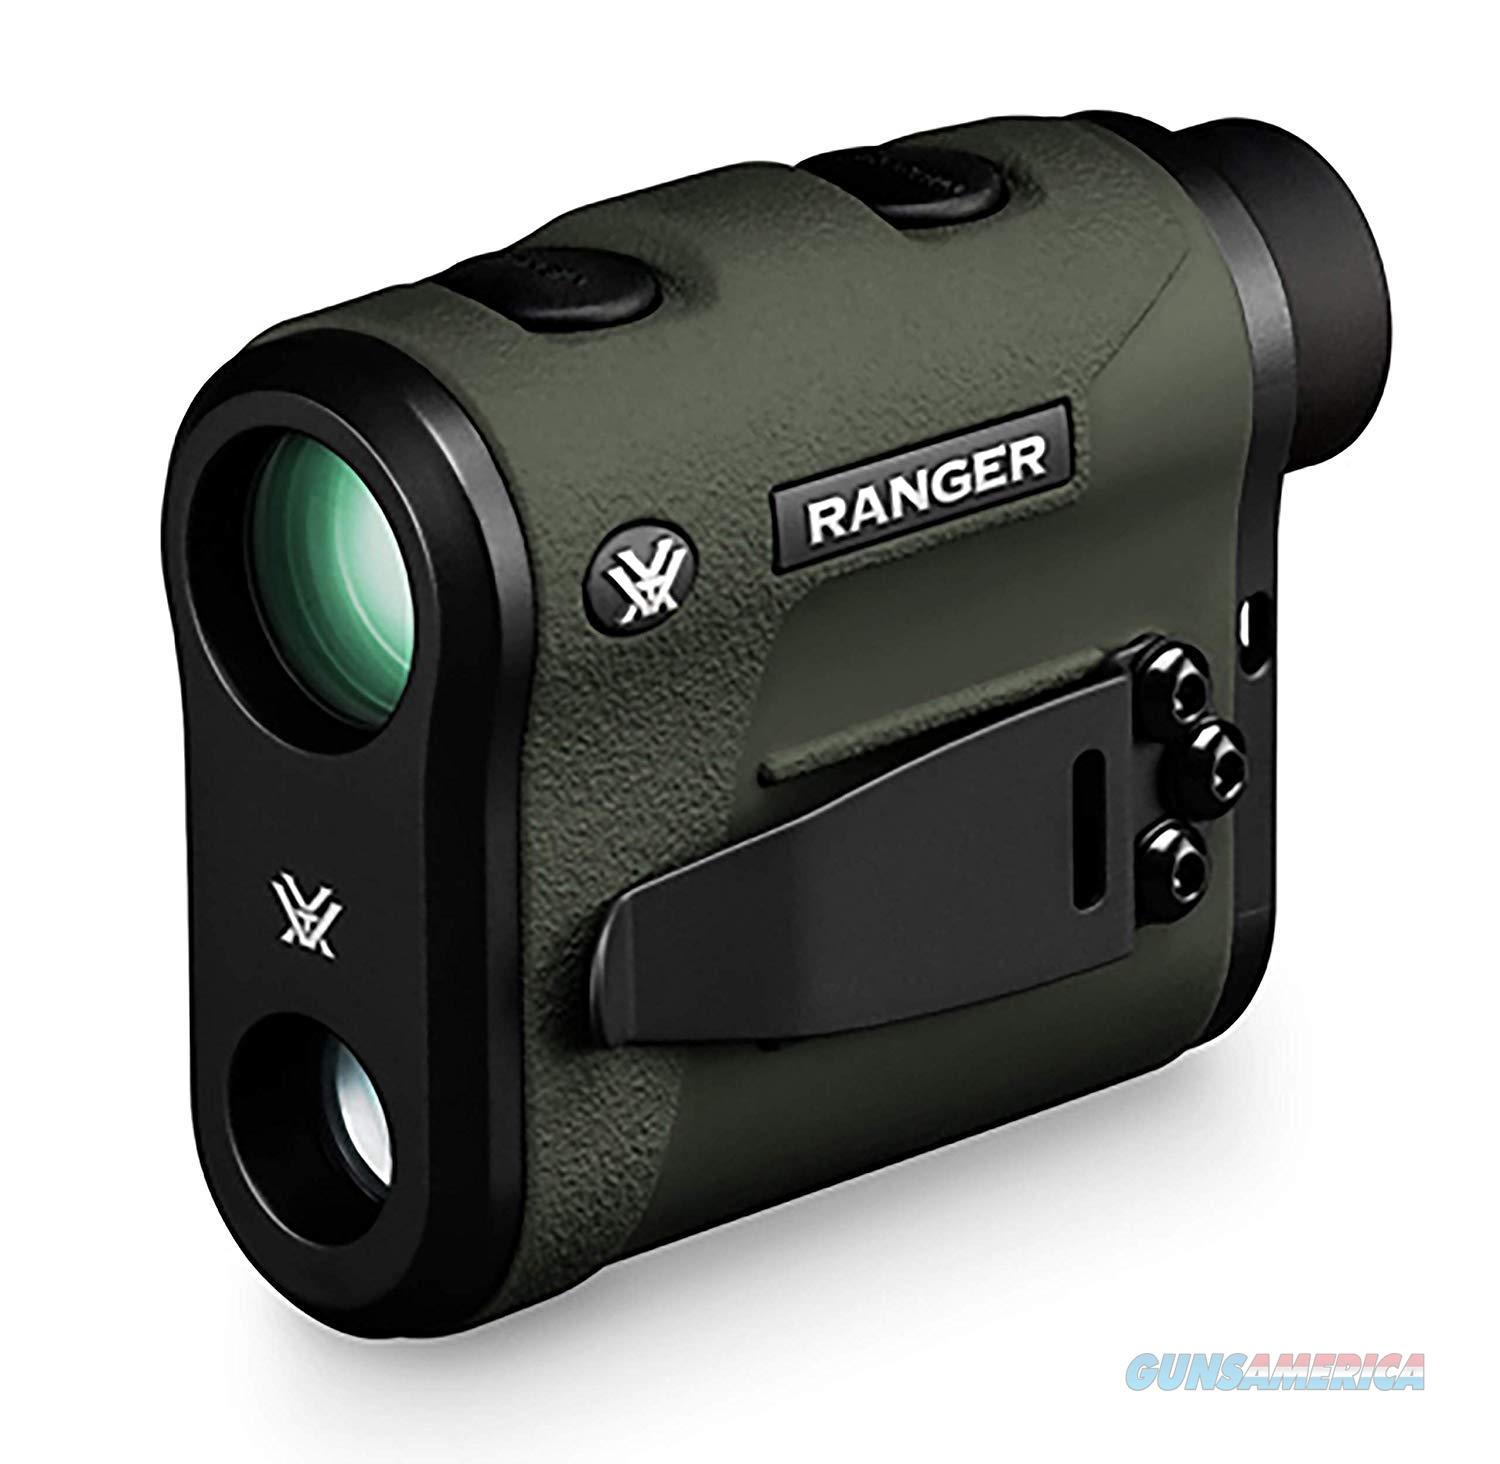 Vortex Optics Ranger 1800 Rangefinder - RRF-181  Non-Guns > Scopes/Mounts/Rings & Optics > Non-Scope Optics > Rangefinders